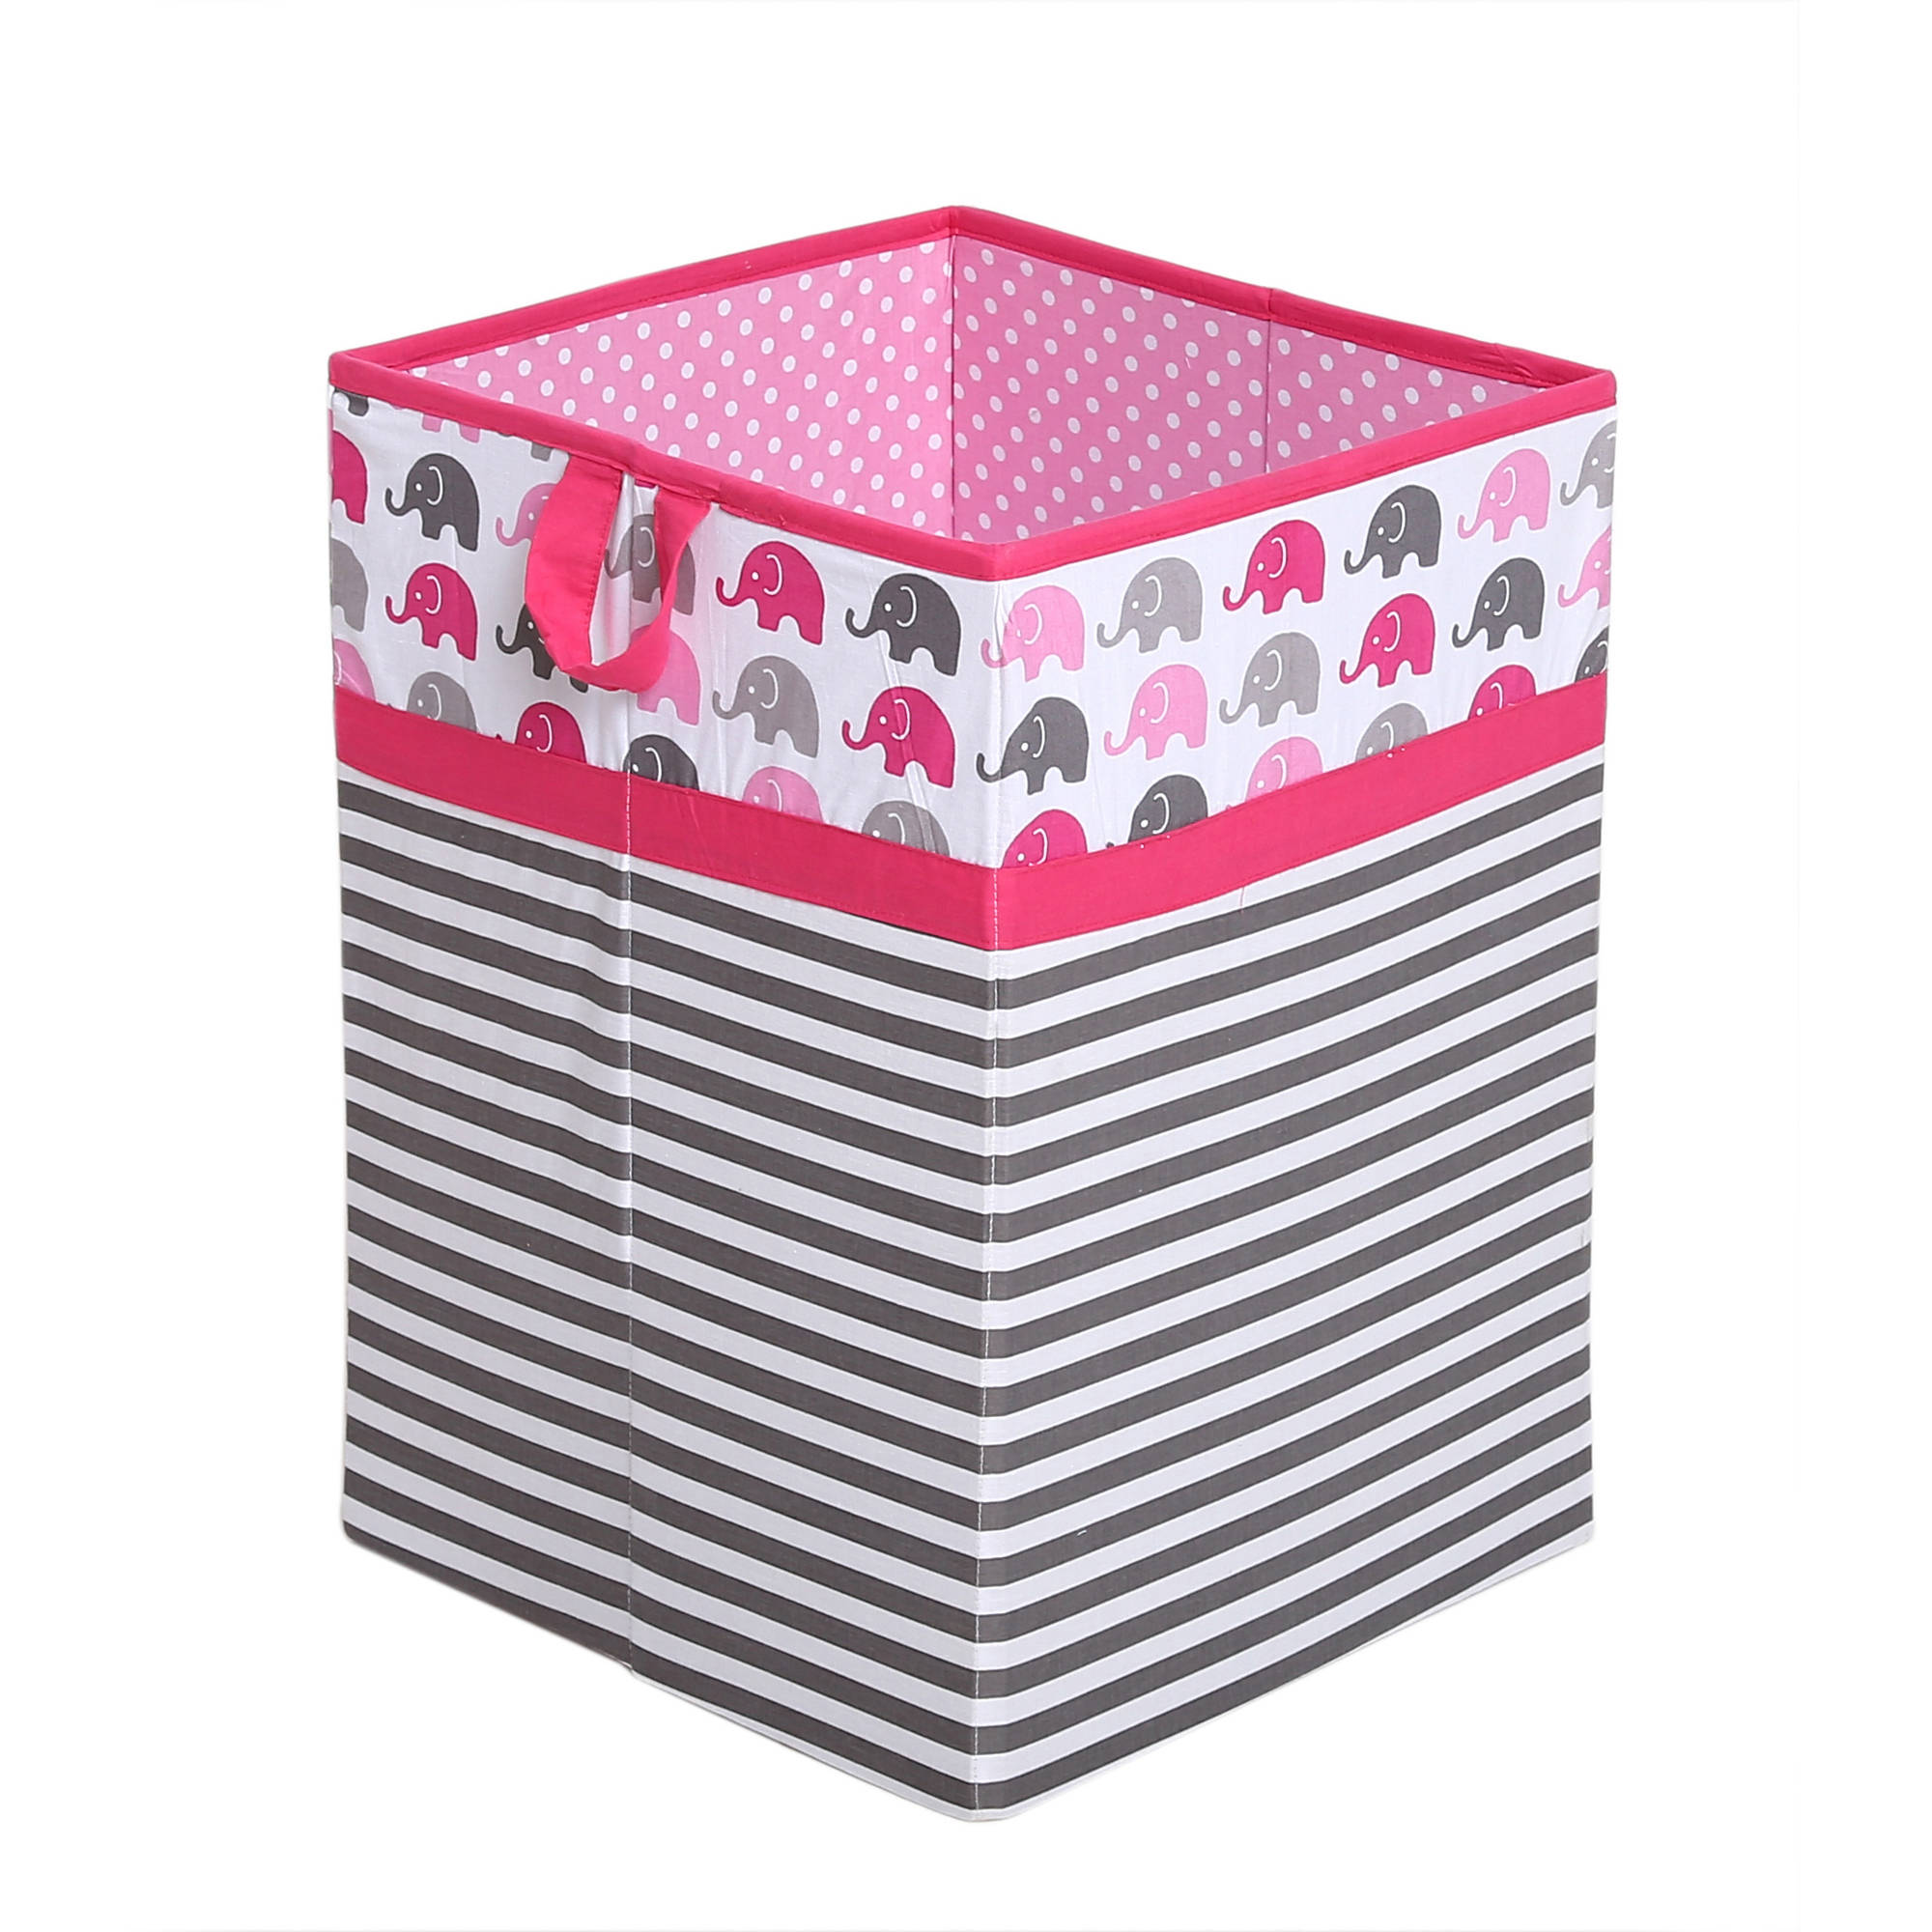 Bacati - Elephants Pink/Gray Cotton Percale Fabric covered Storage, Collapsible Hamper, 18 H x 13 W x 13 L inches